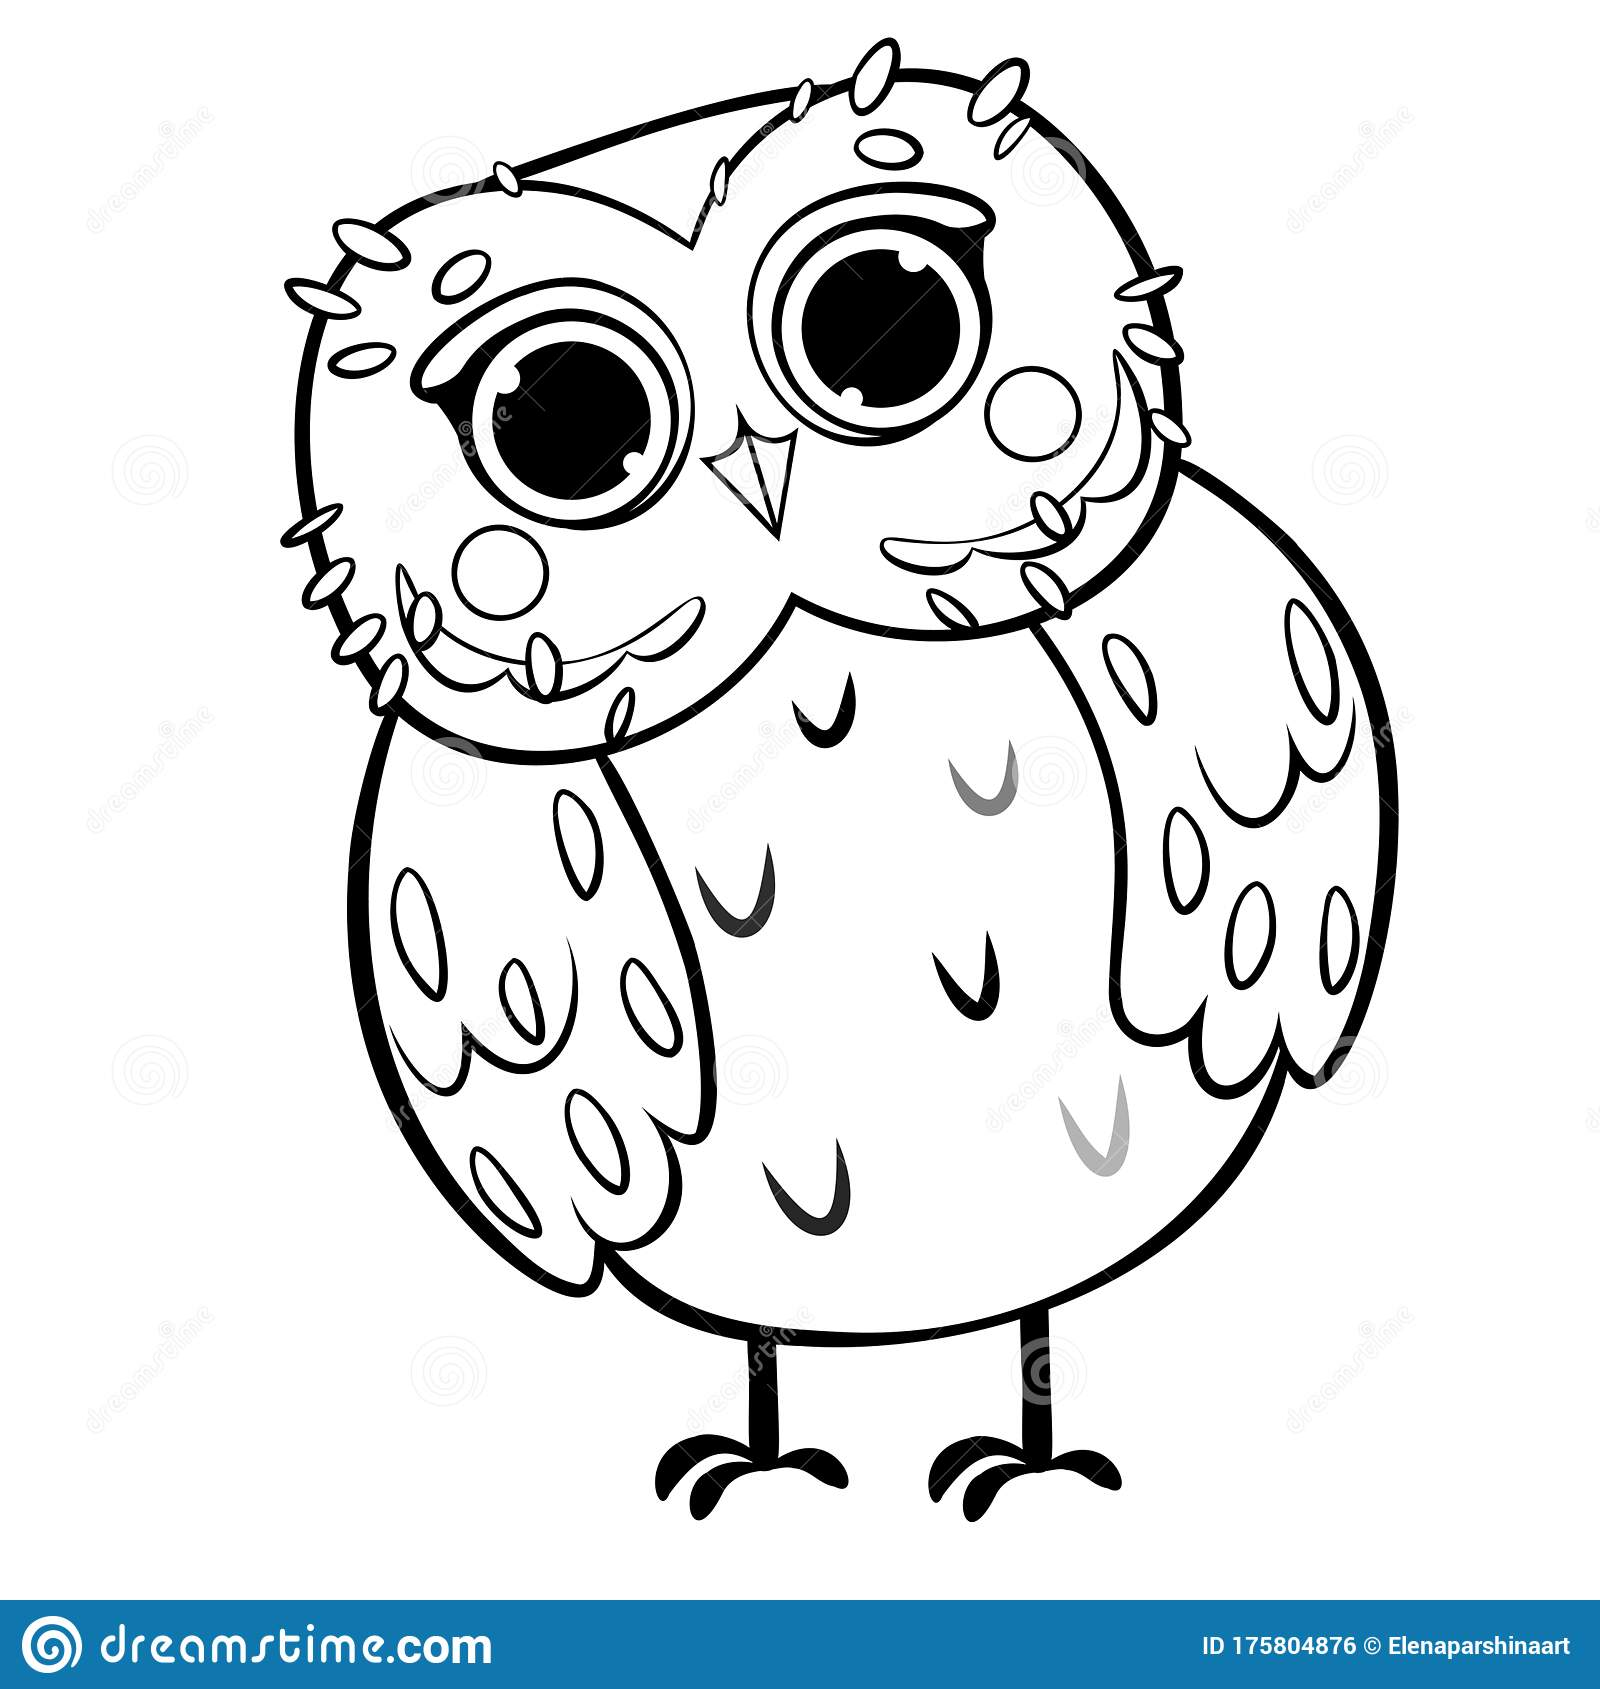 Coloring Page Outline Of Cute Cartoon Owl. Vector Image ...